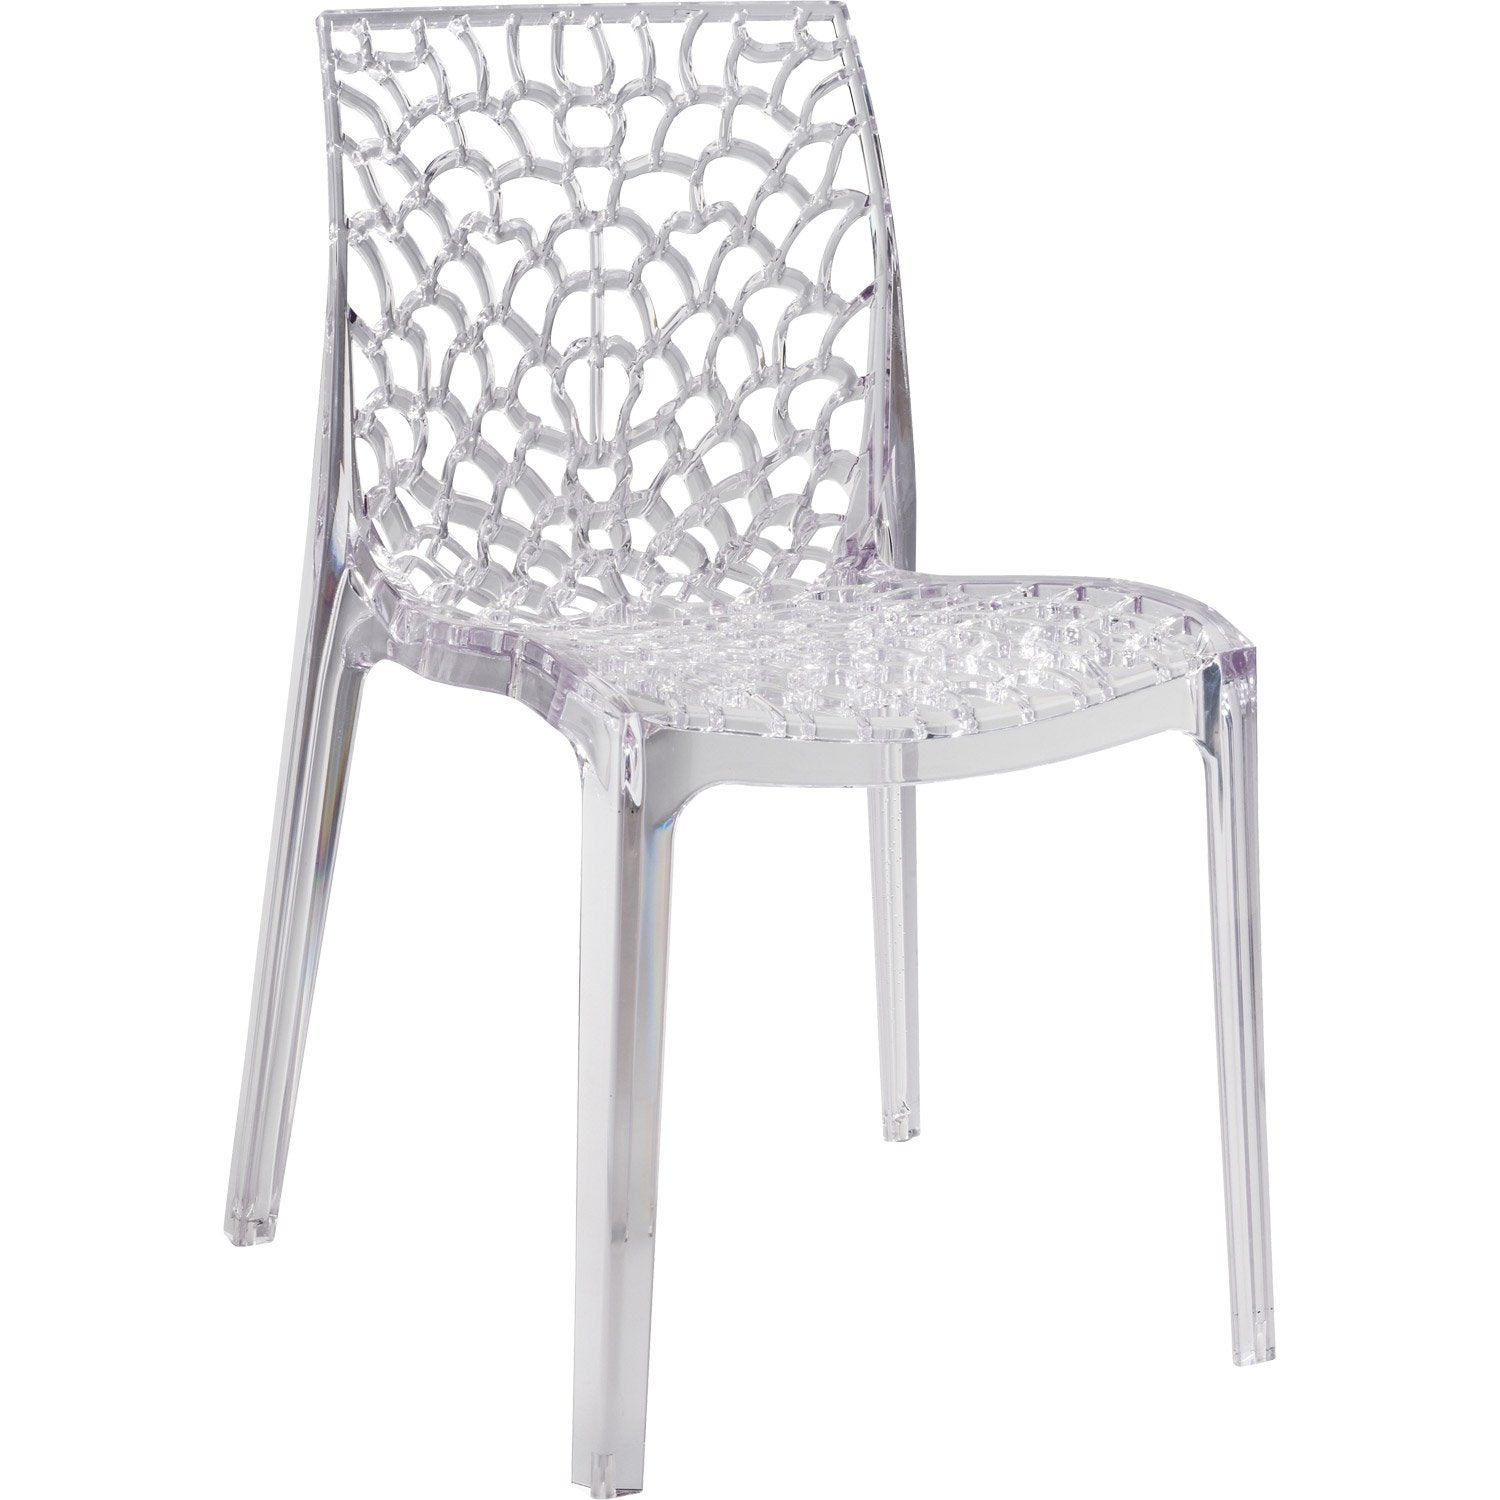 Chaise de jardin en polycarbonate grafik lux transparent for Chaise de jardin